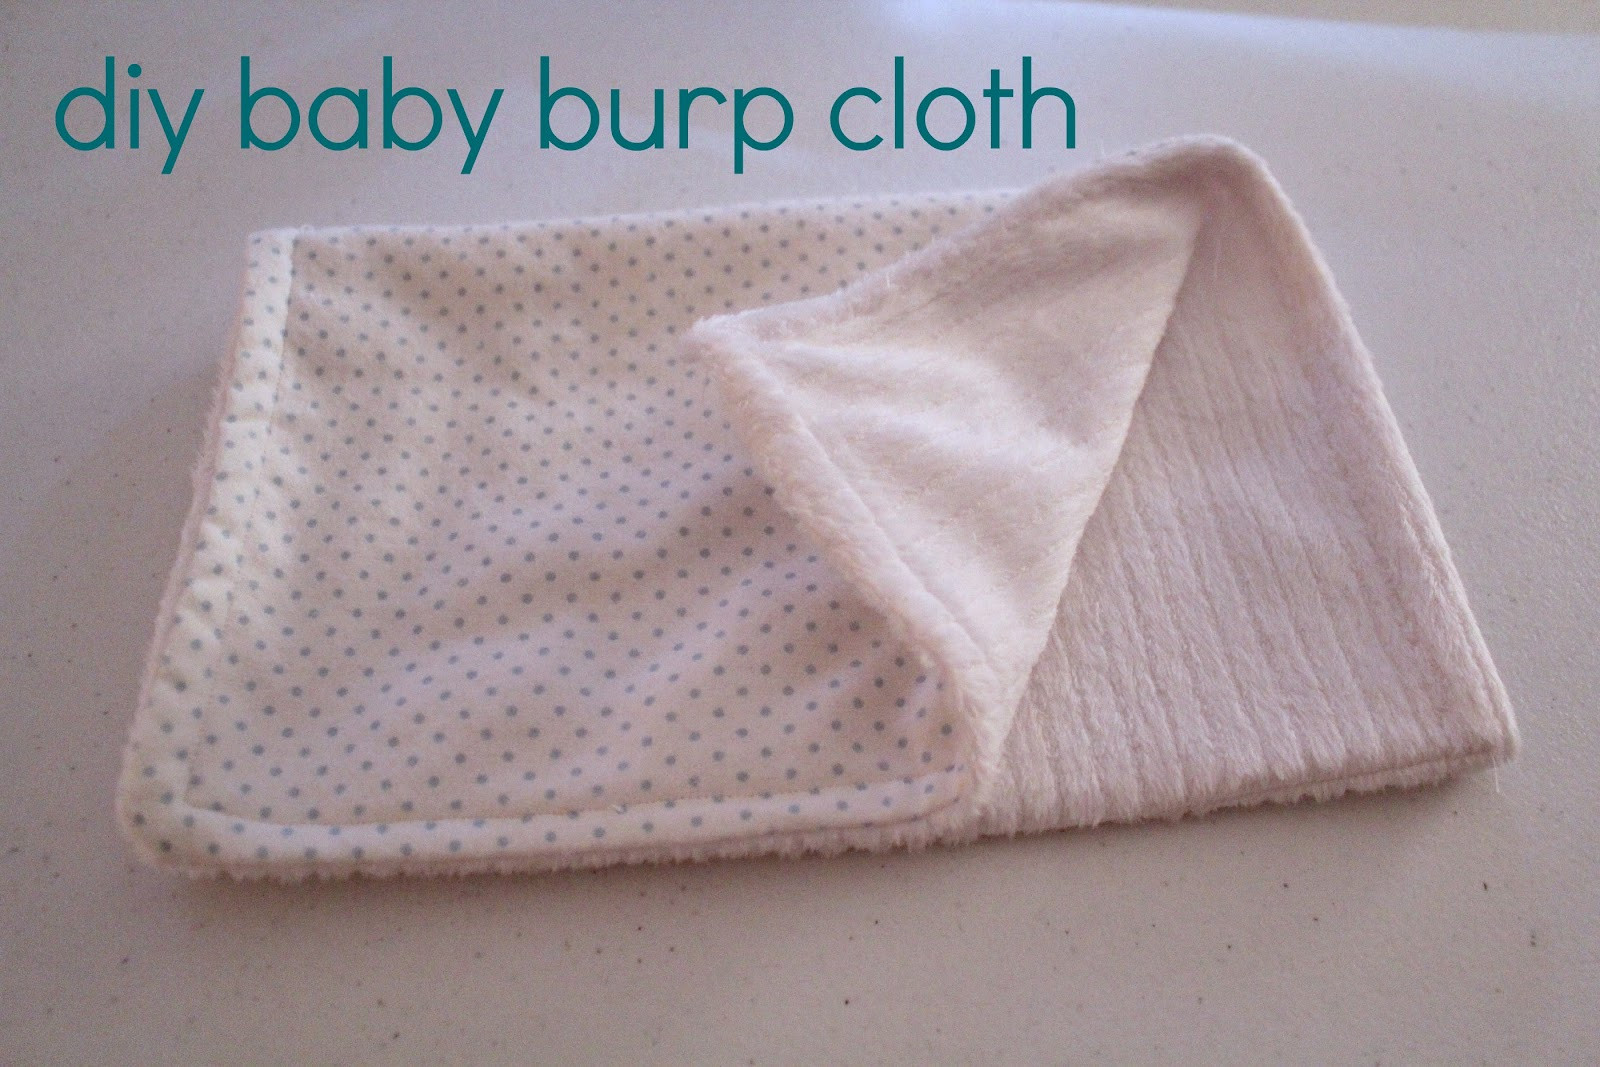 Best ideas about Baby Burp Cloths DIY . Save or Pin Ten June DIY Baby Burp Cloth Now.